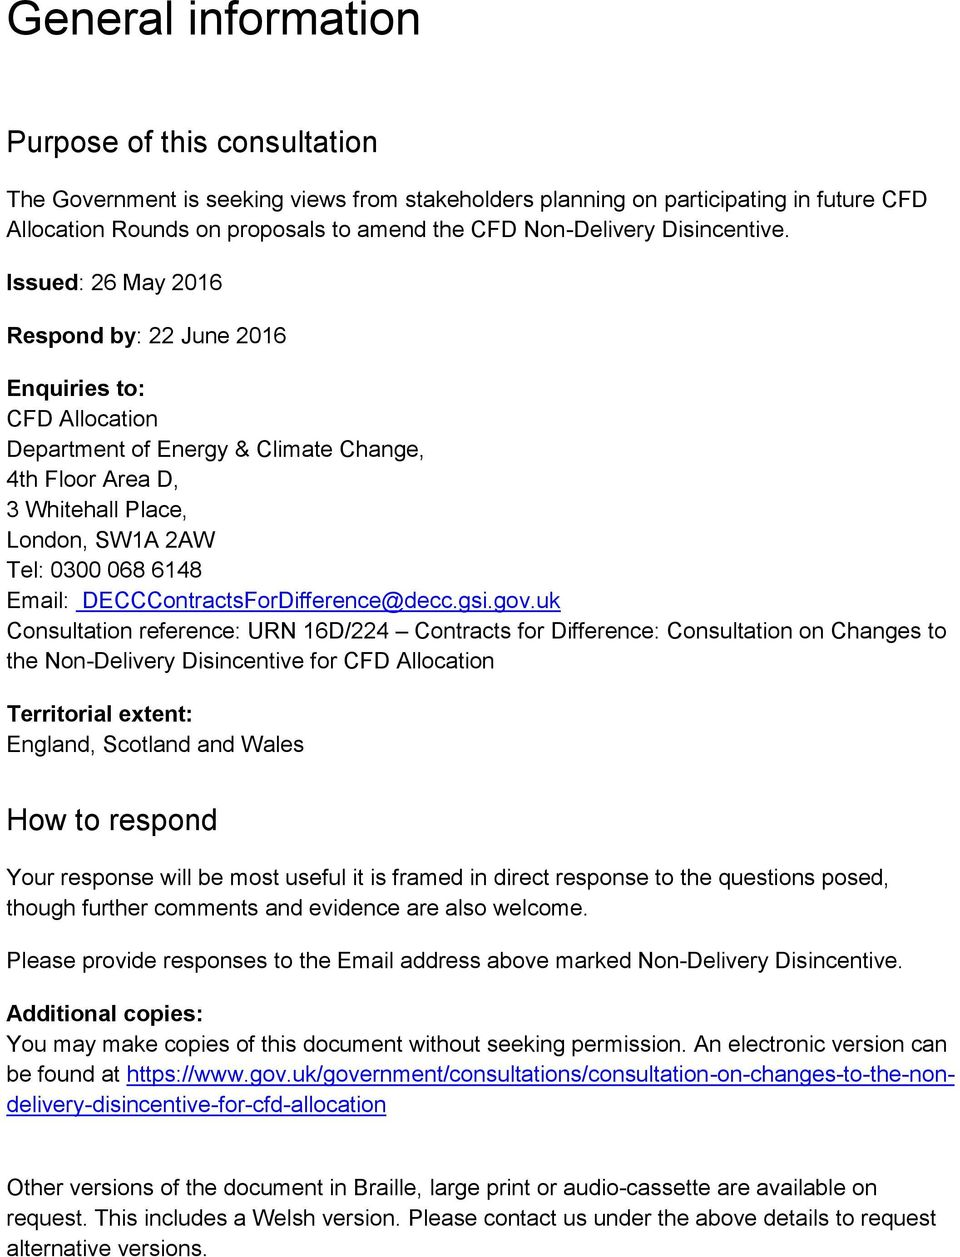 Issued: 26 May 2016 Respond by: 22 June 2016 Enquiries to: CFD Allocation Department of Energy & Climate Change, 4th Floor Area D, 3 Whitehall Place, London, SW1A 2AW Tel: 0300 068 6148 Email: